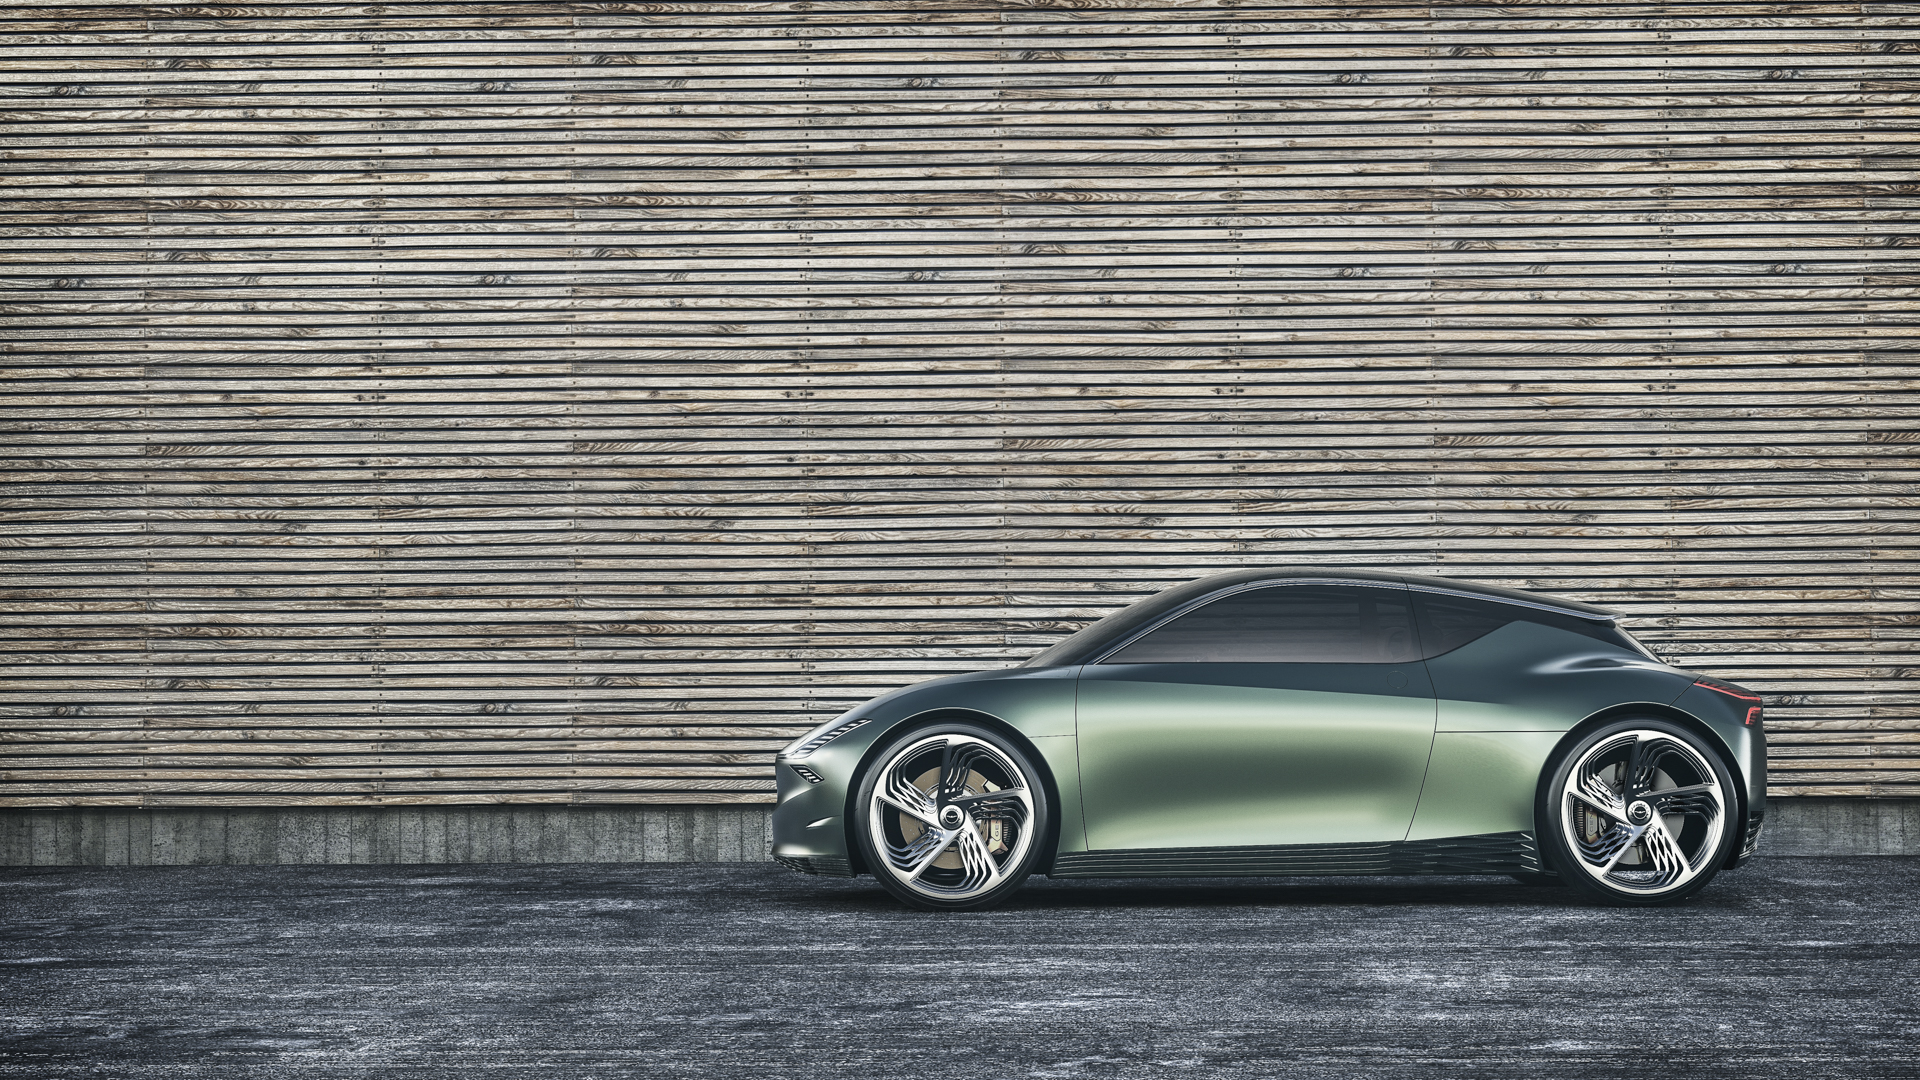 2019 NY Auto Show: Genesis Mint Concept is even funkier than the BMW i3